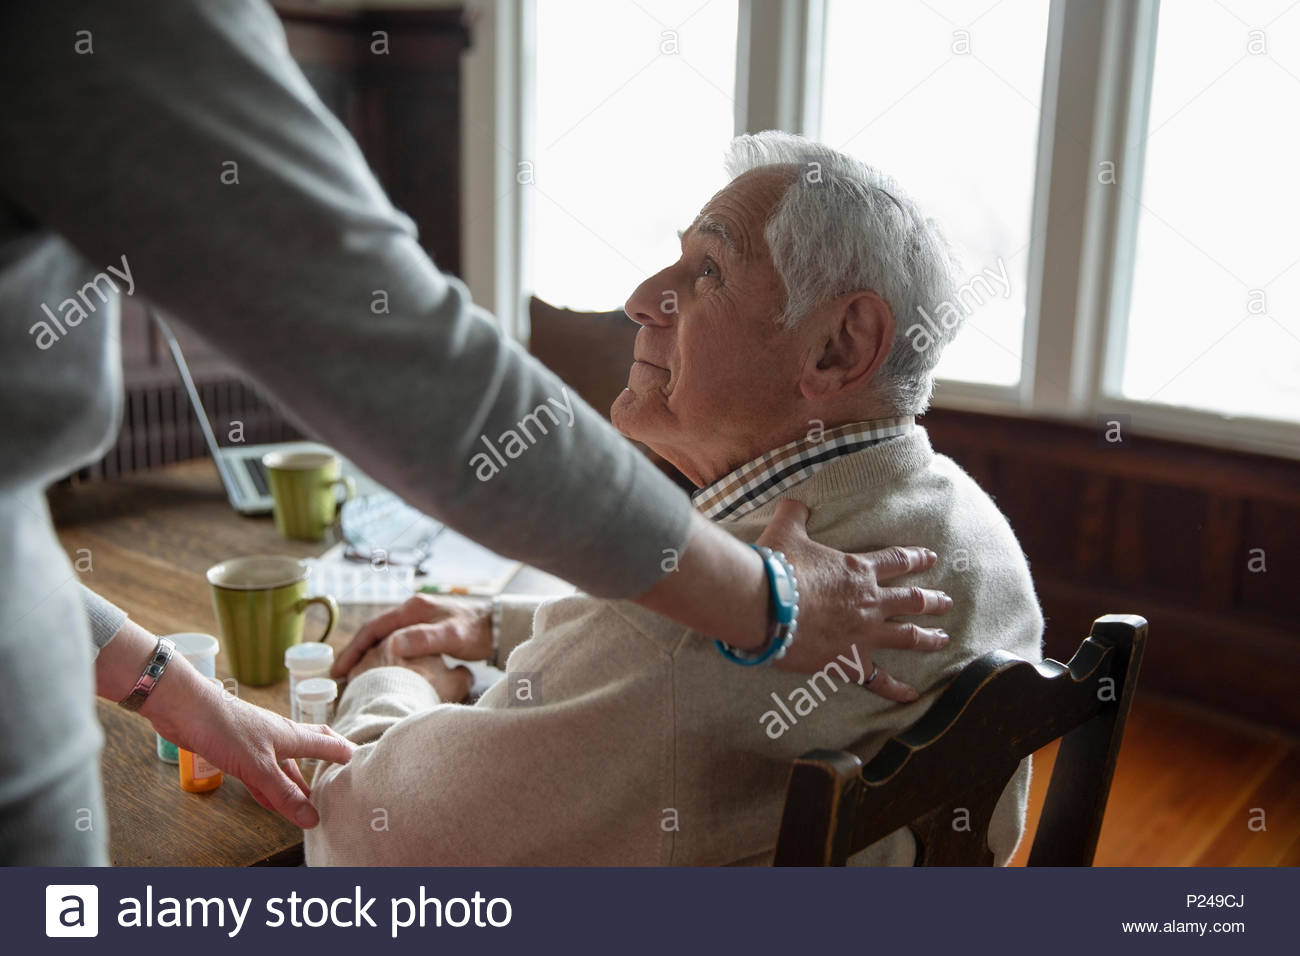 Home caregiver comforting senior man at table - Stock Image